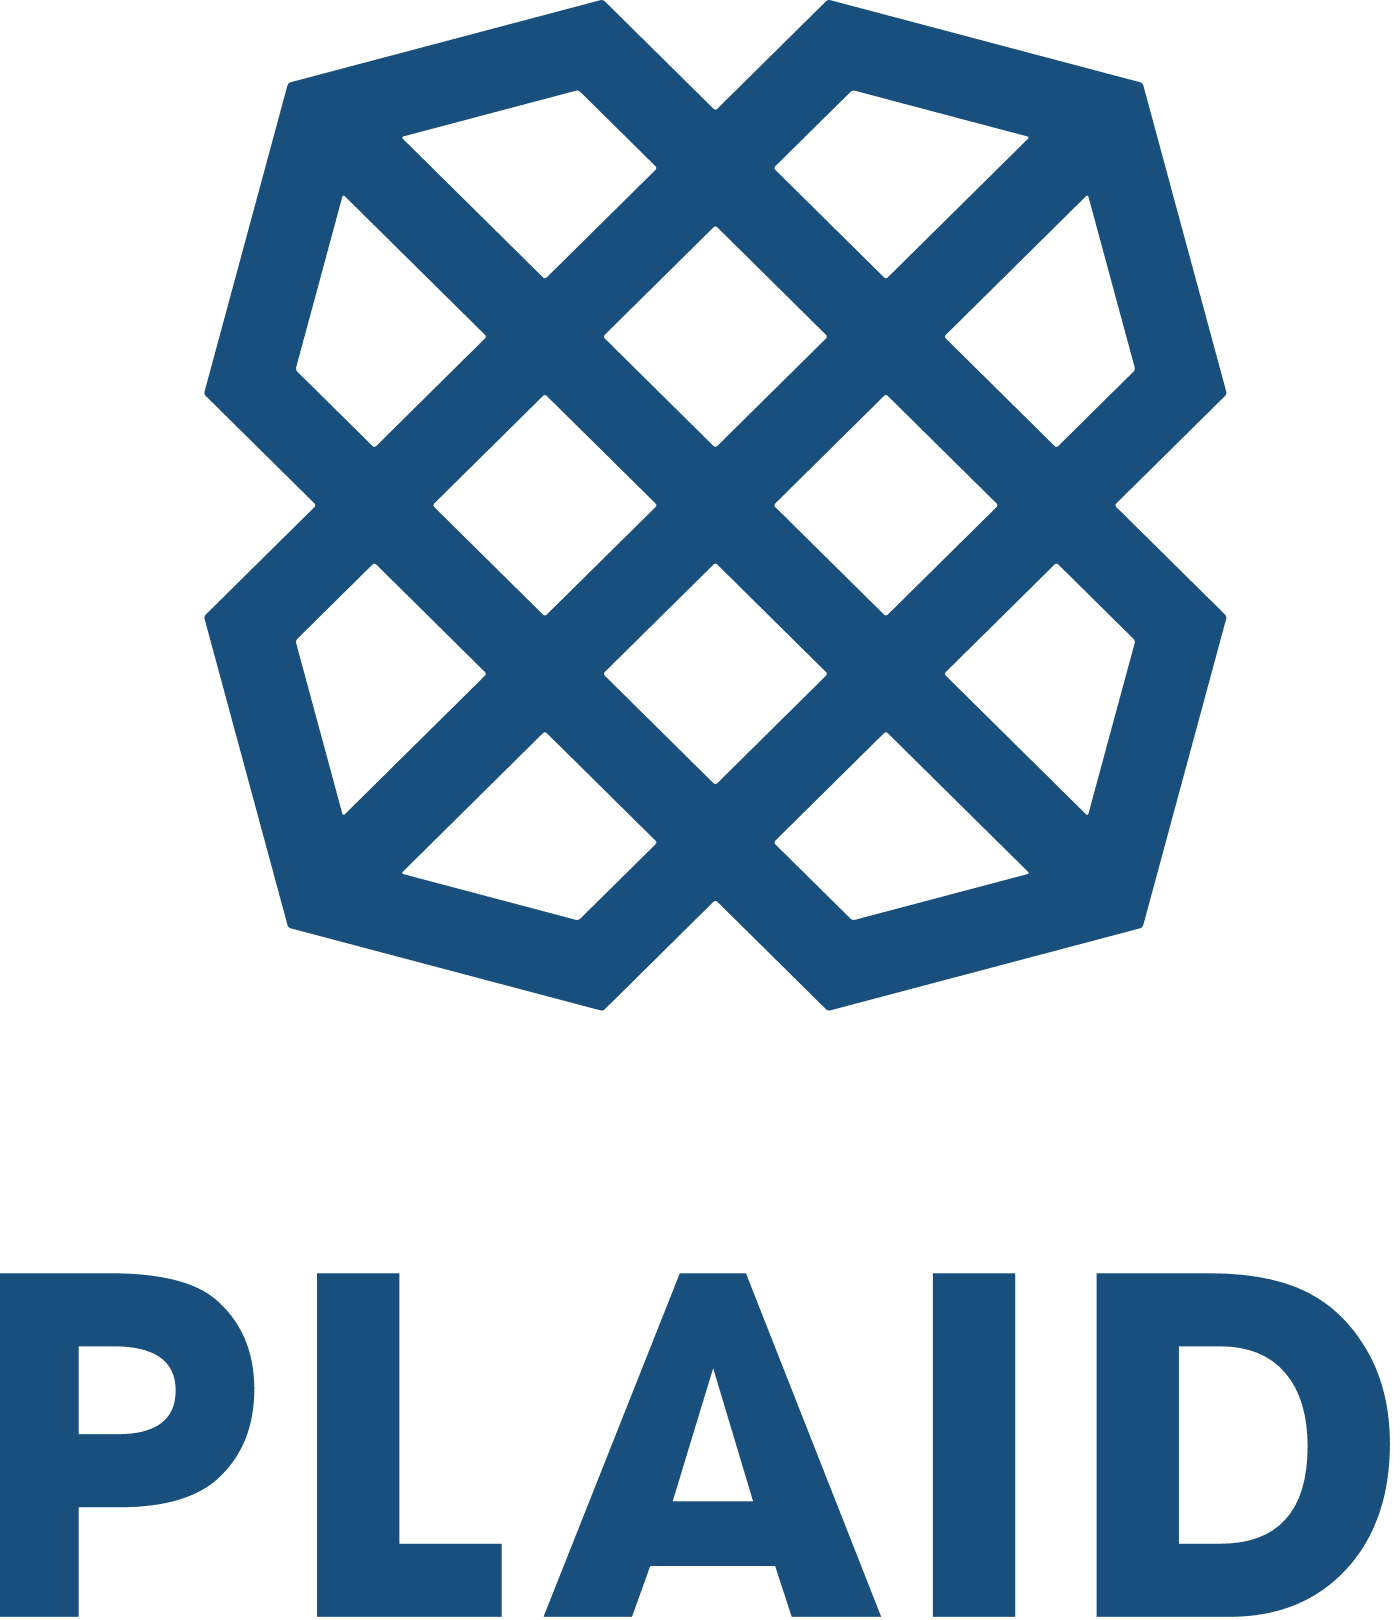 Plaid company's logo